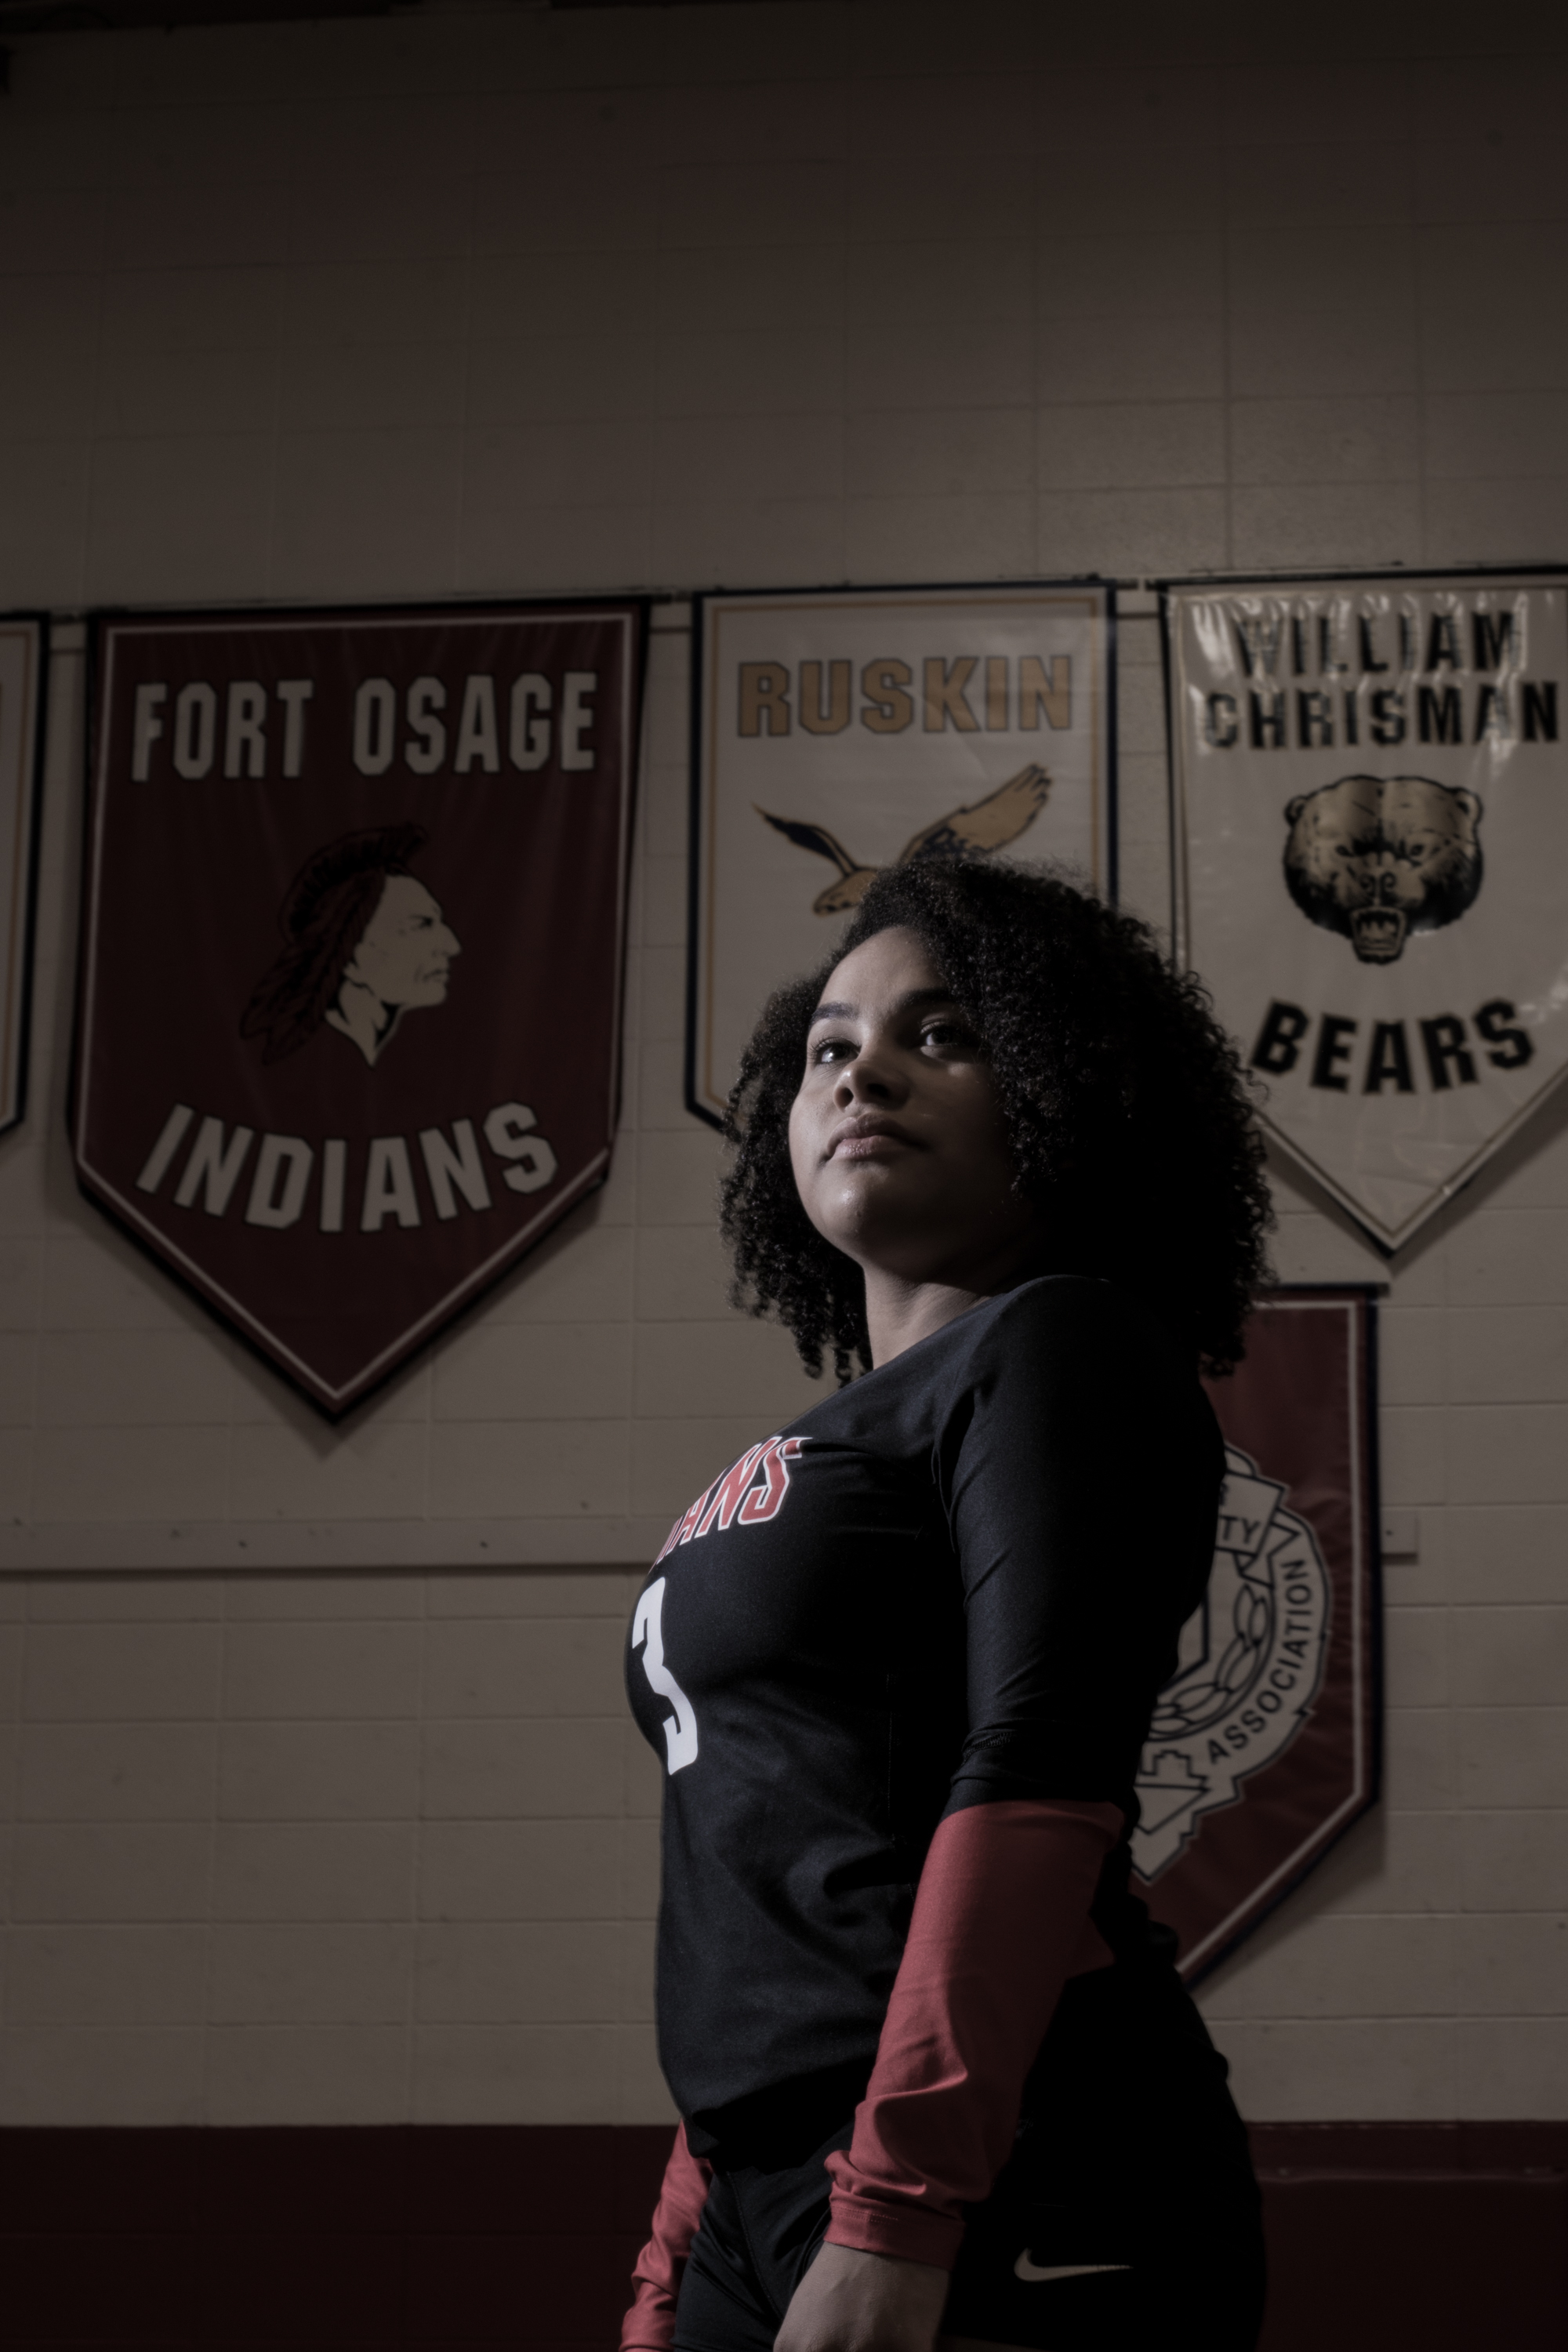 Fort Osage Volleyball 2018 (17 of 123).jpg